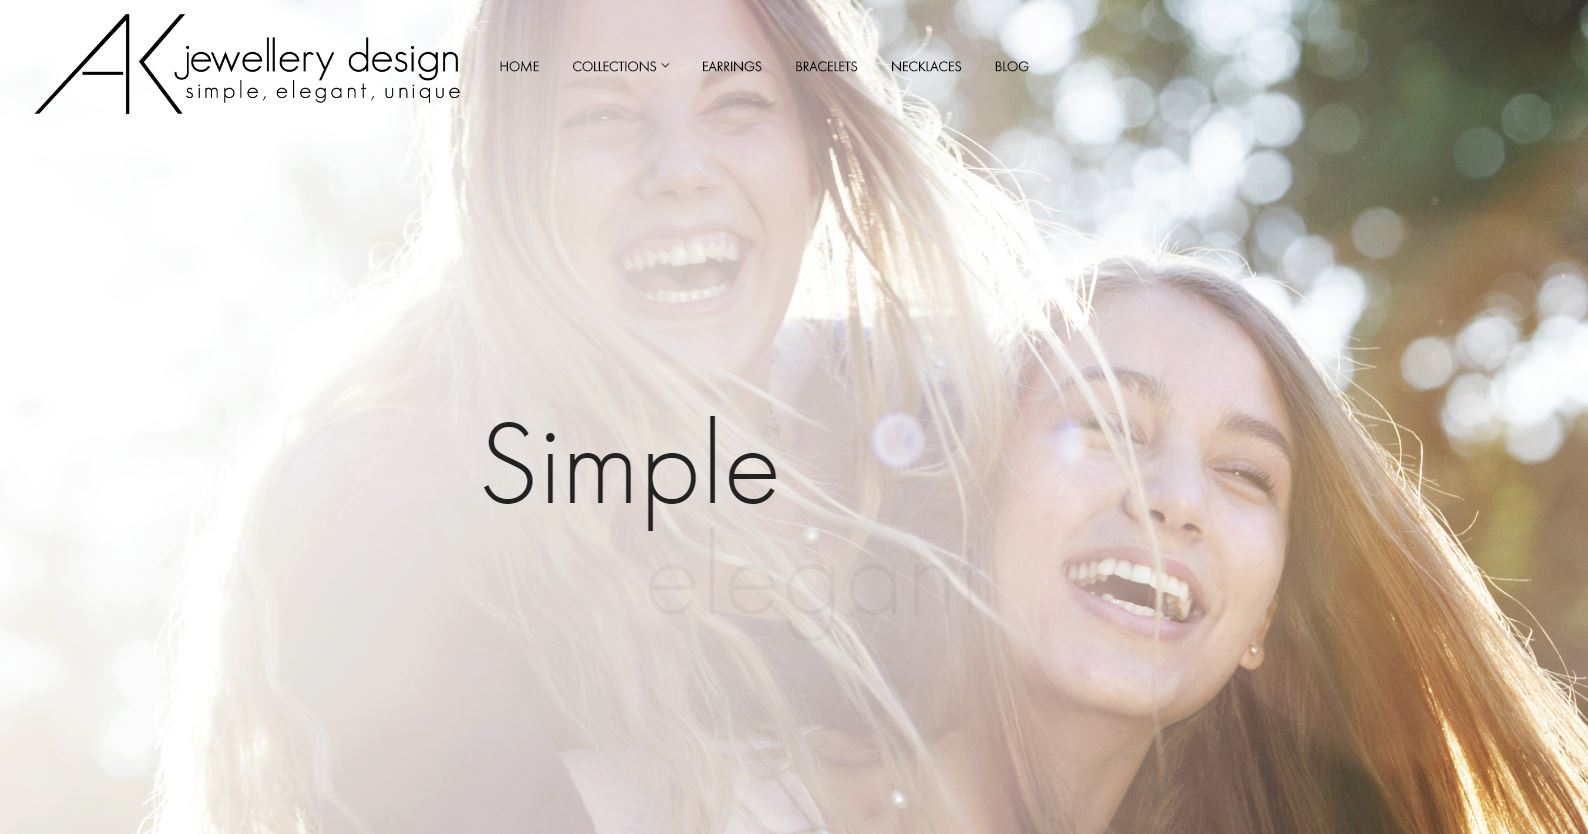 AK Jewellery homepage design by Collective Creative